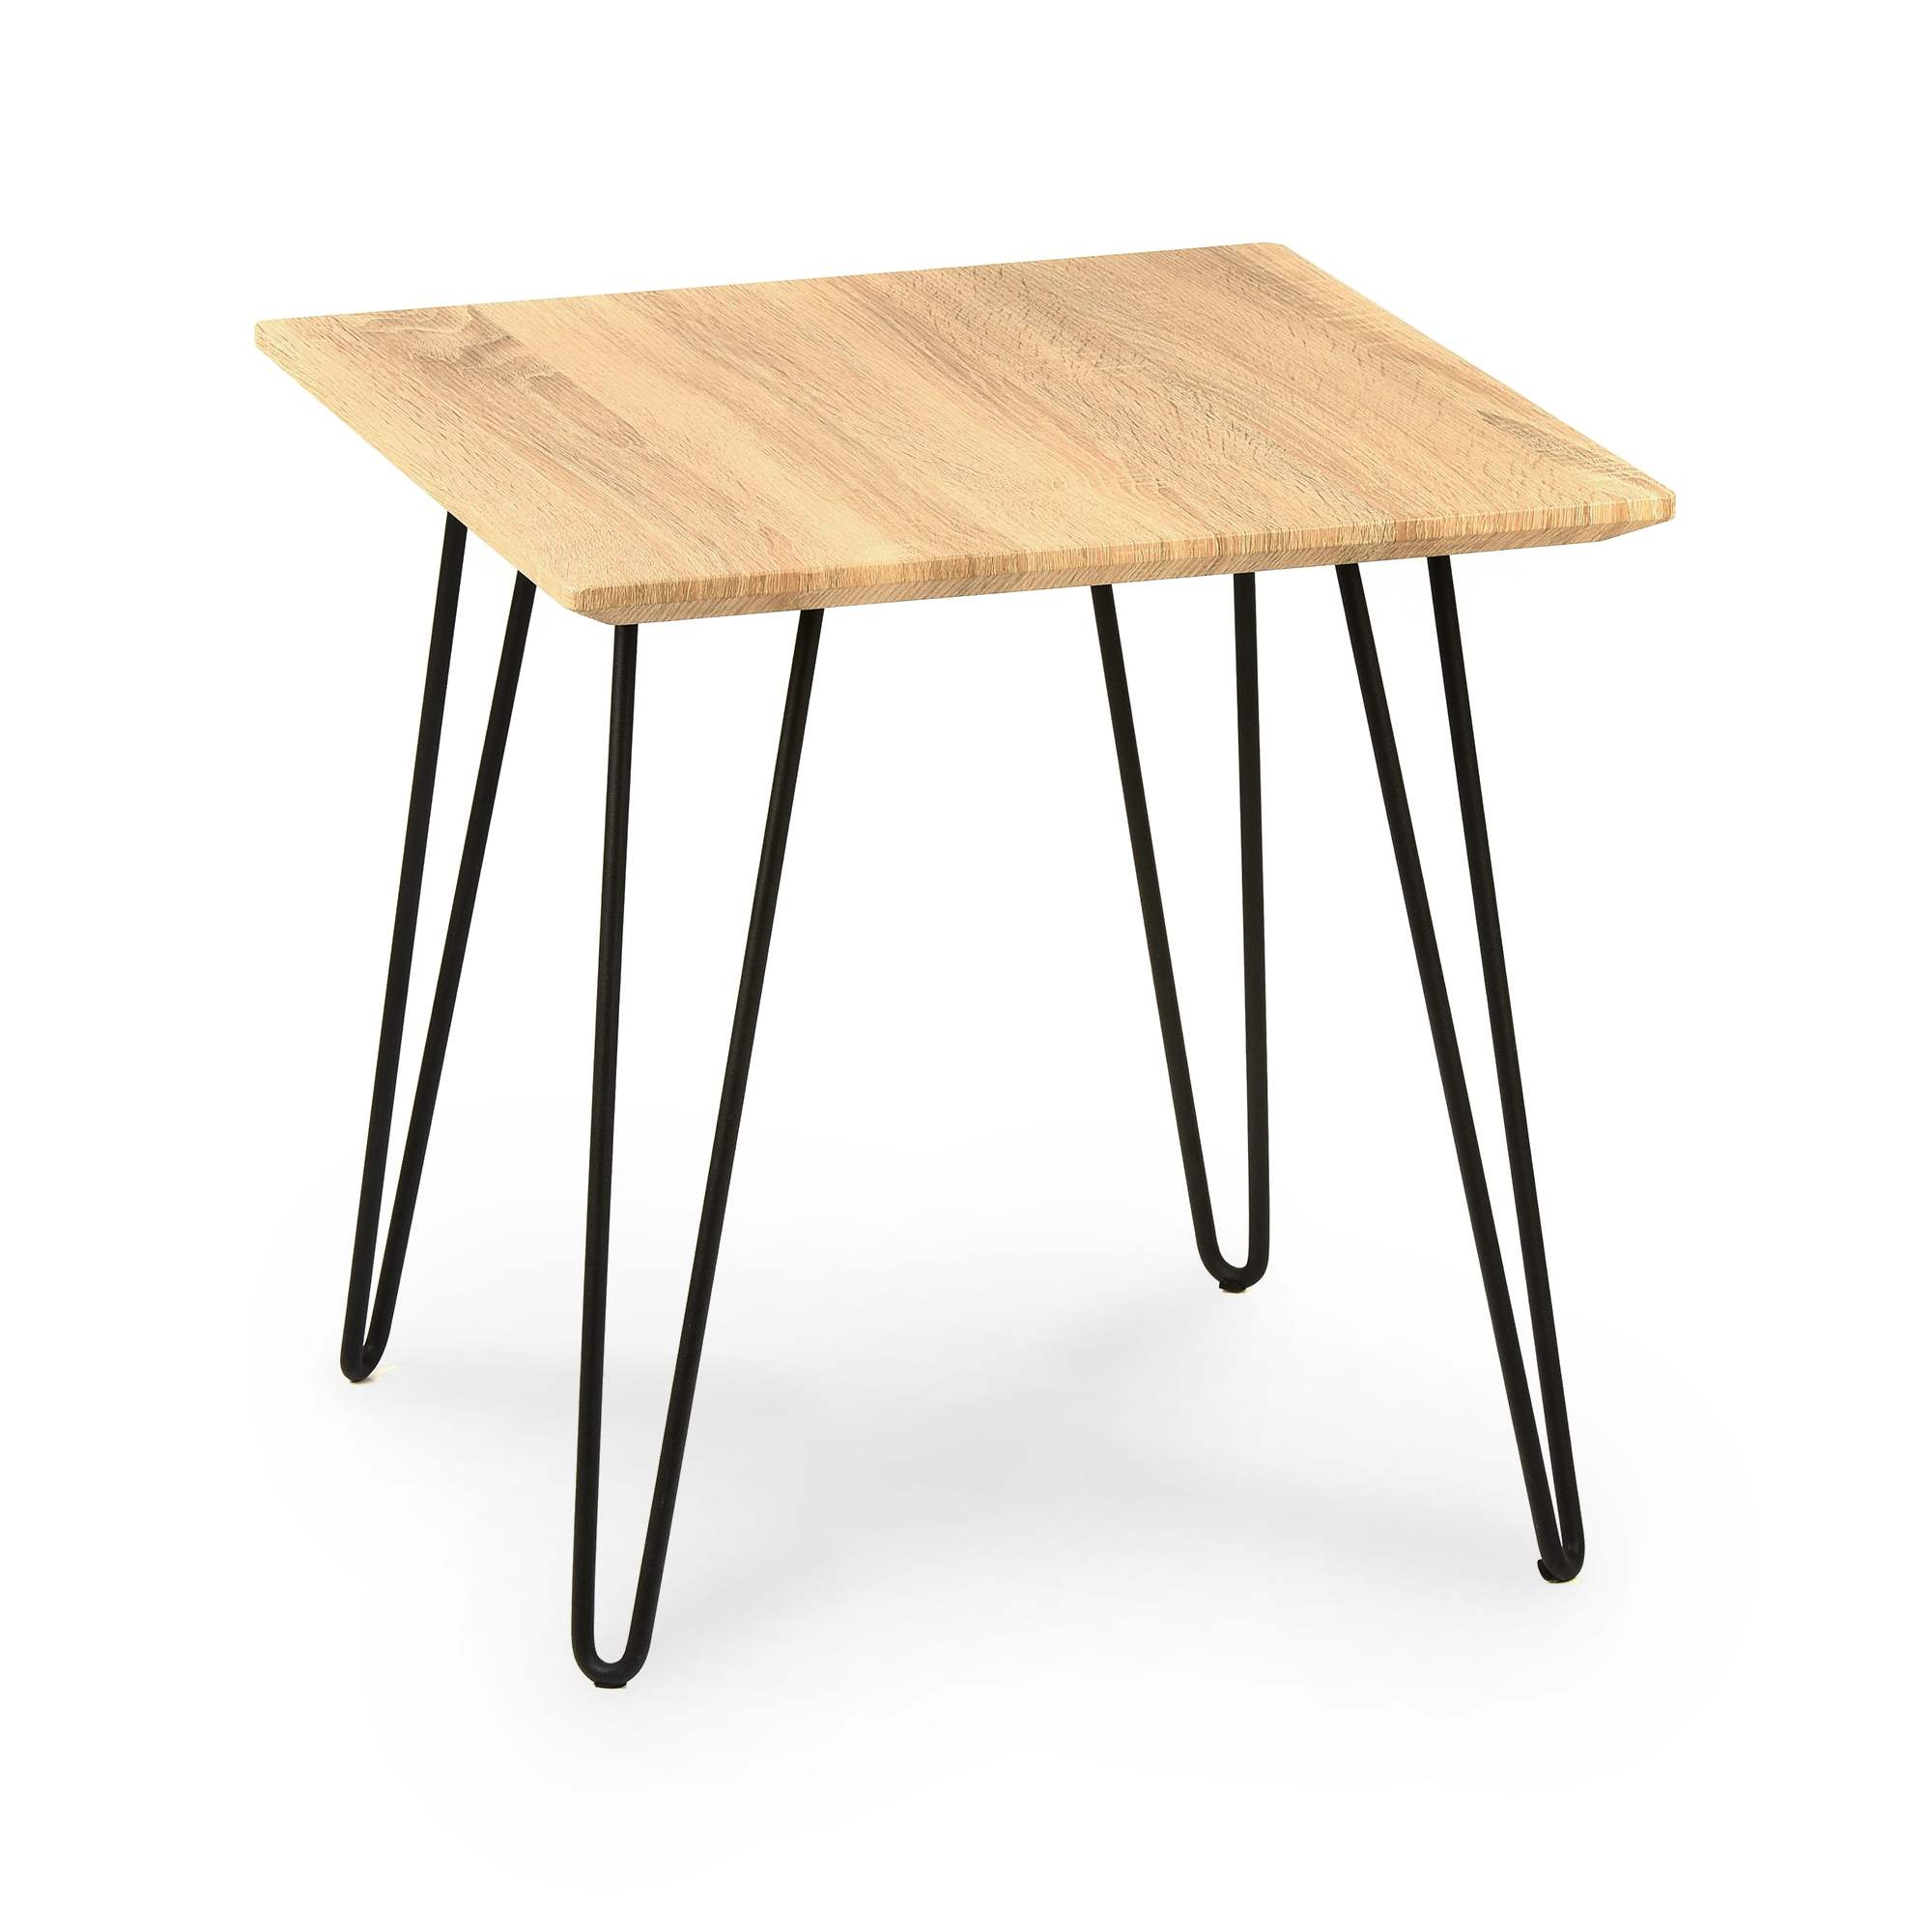 Table basse d'appoint design rétro SABA